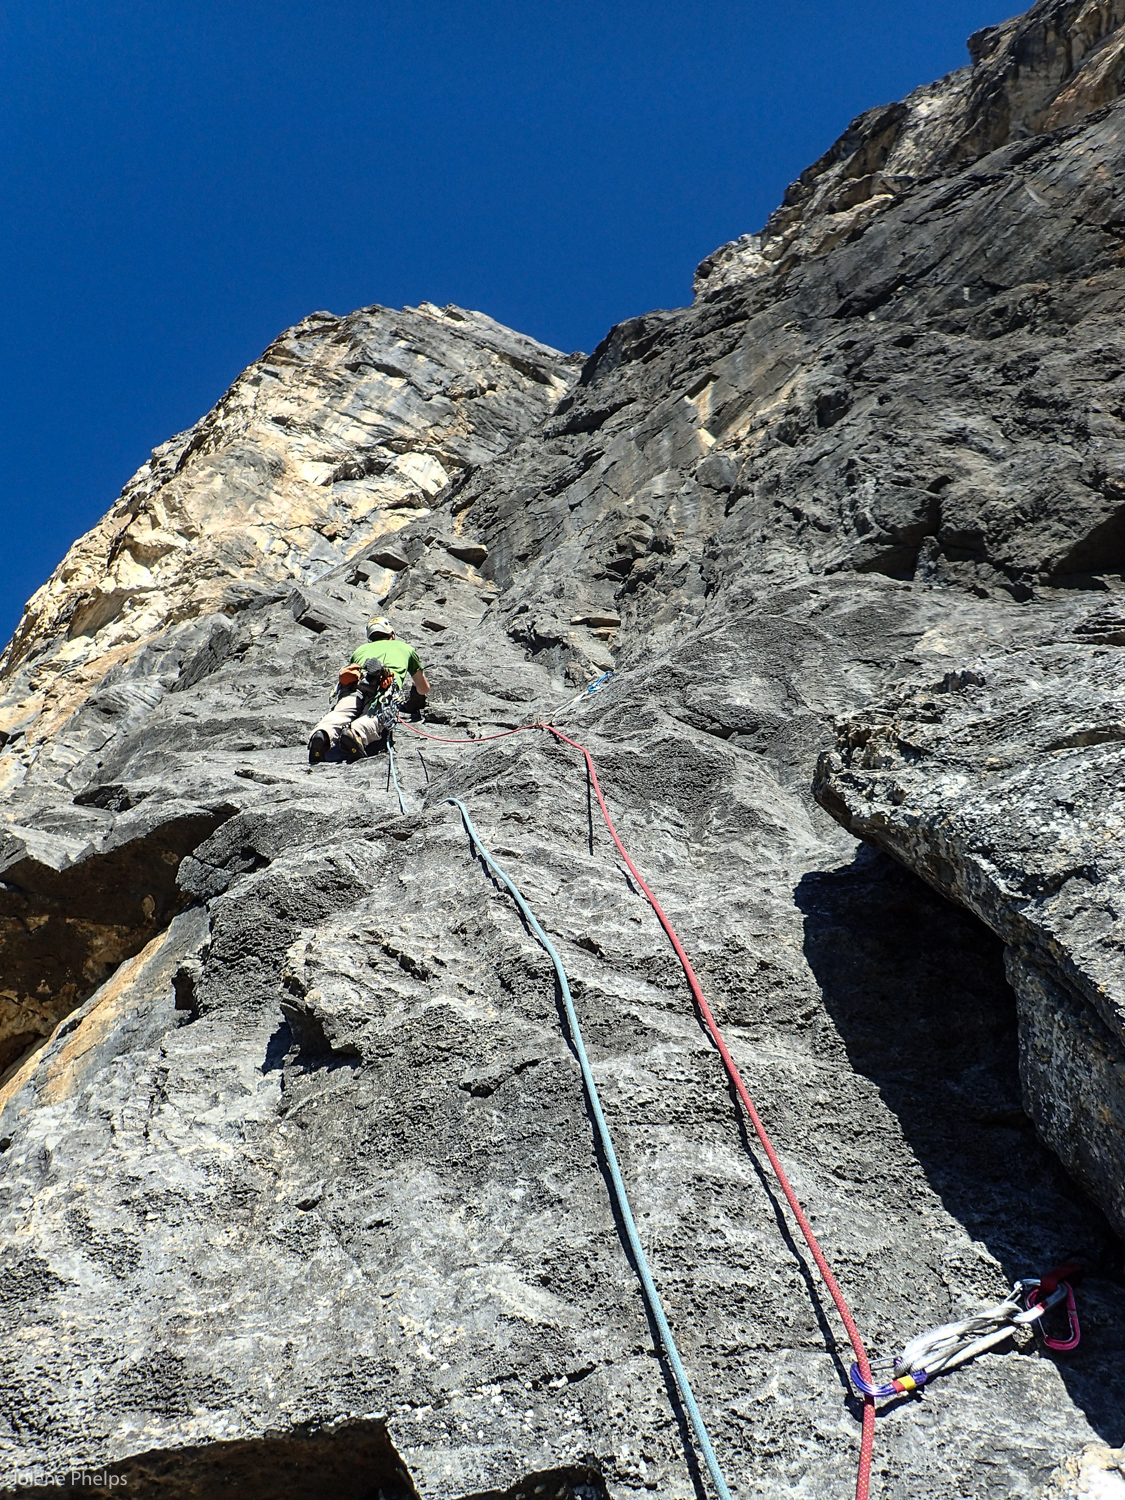 Ian Greant on the 3rd pitch of The Wraith